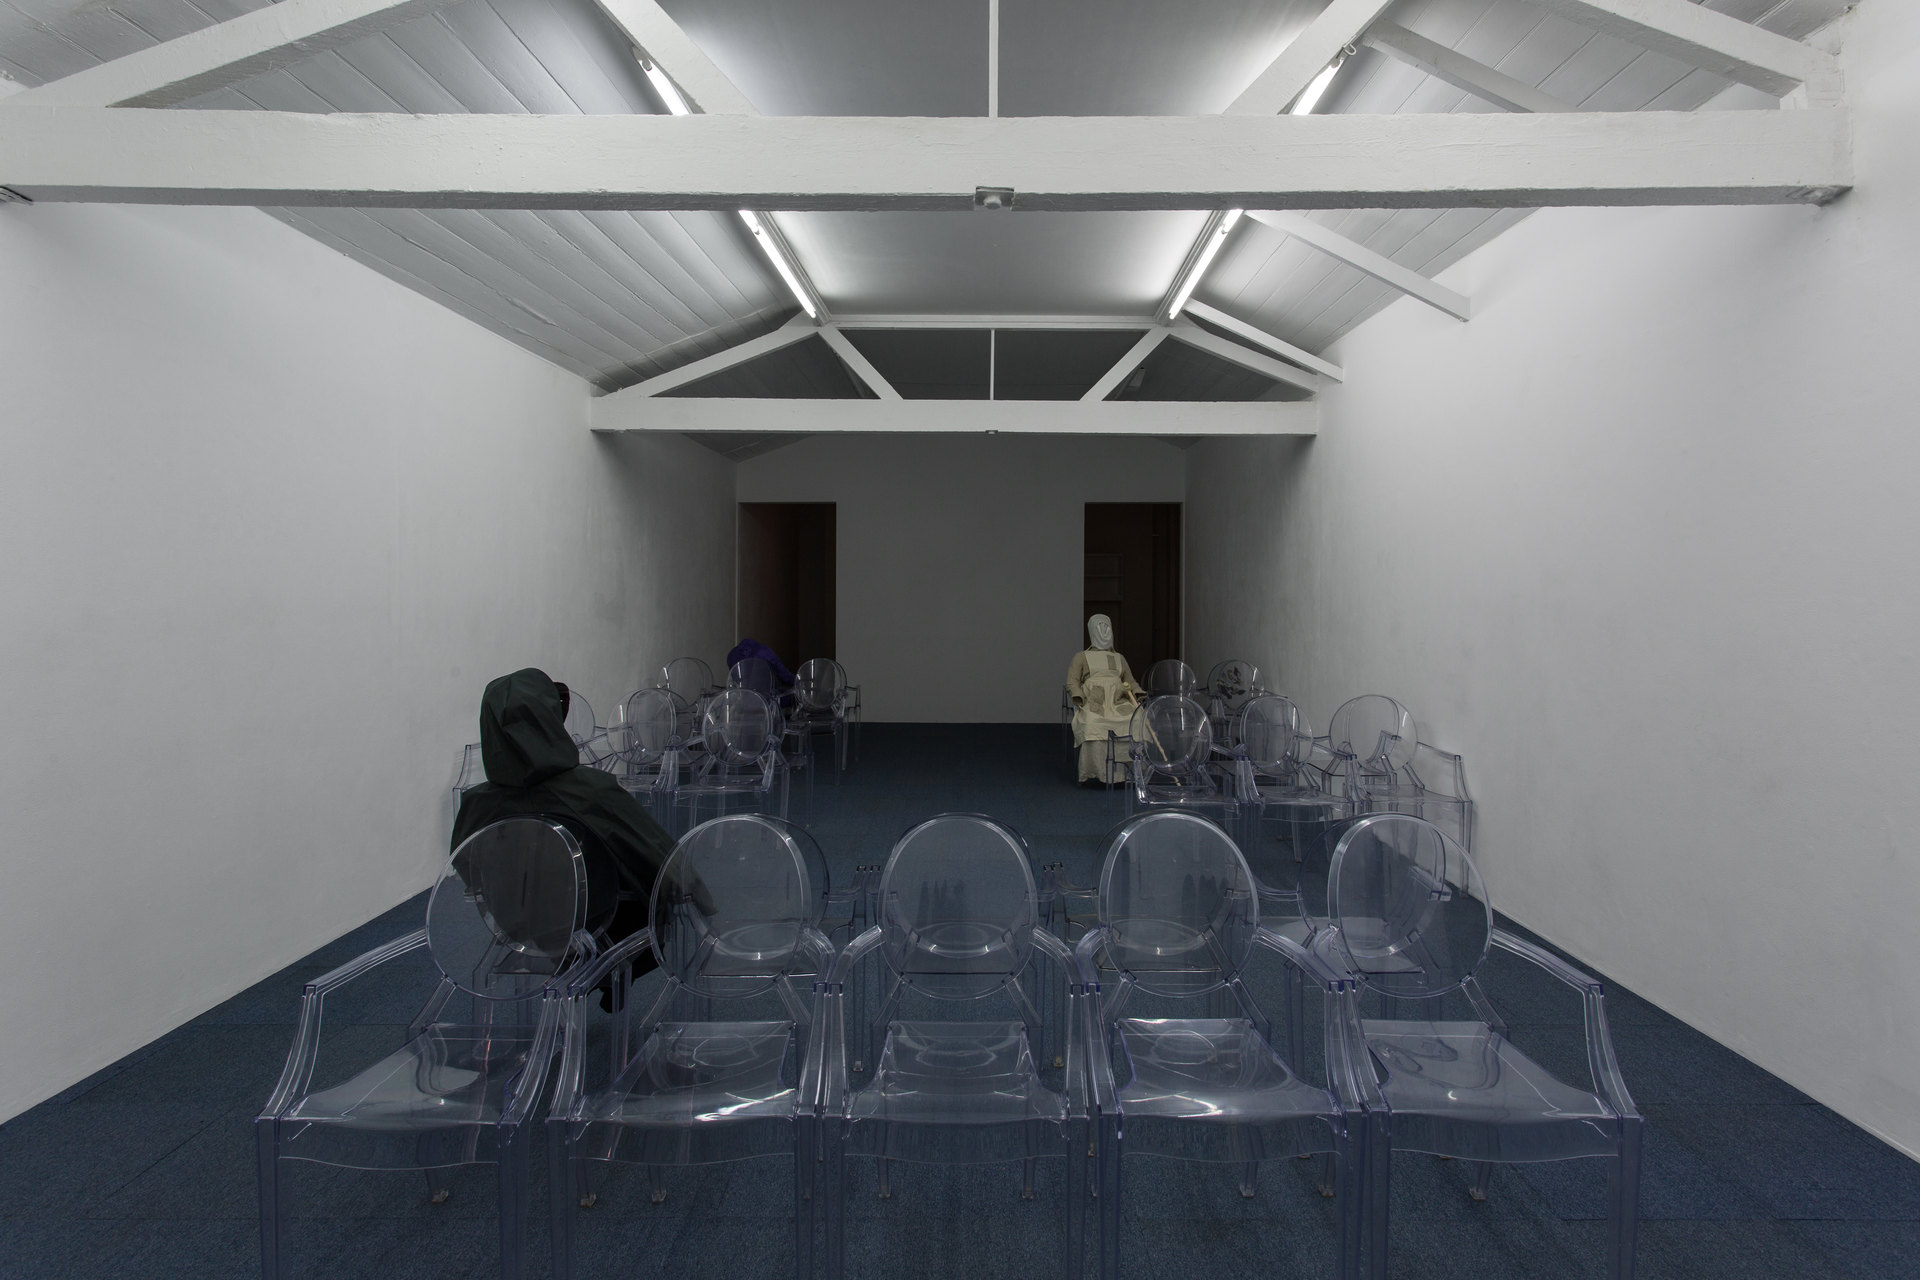 Angharad Williams and Mathis Gasser, installation view, Hergest:Nant, 2018, Cell Project Space